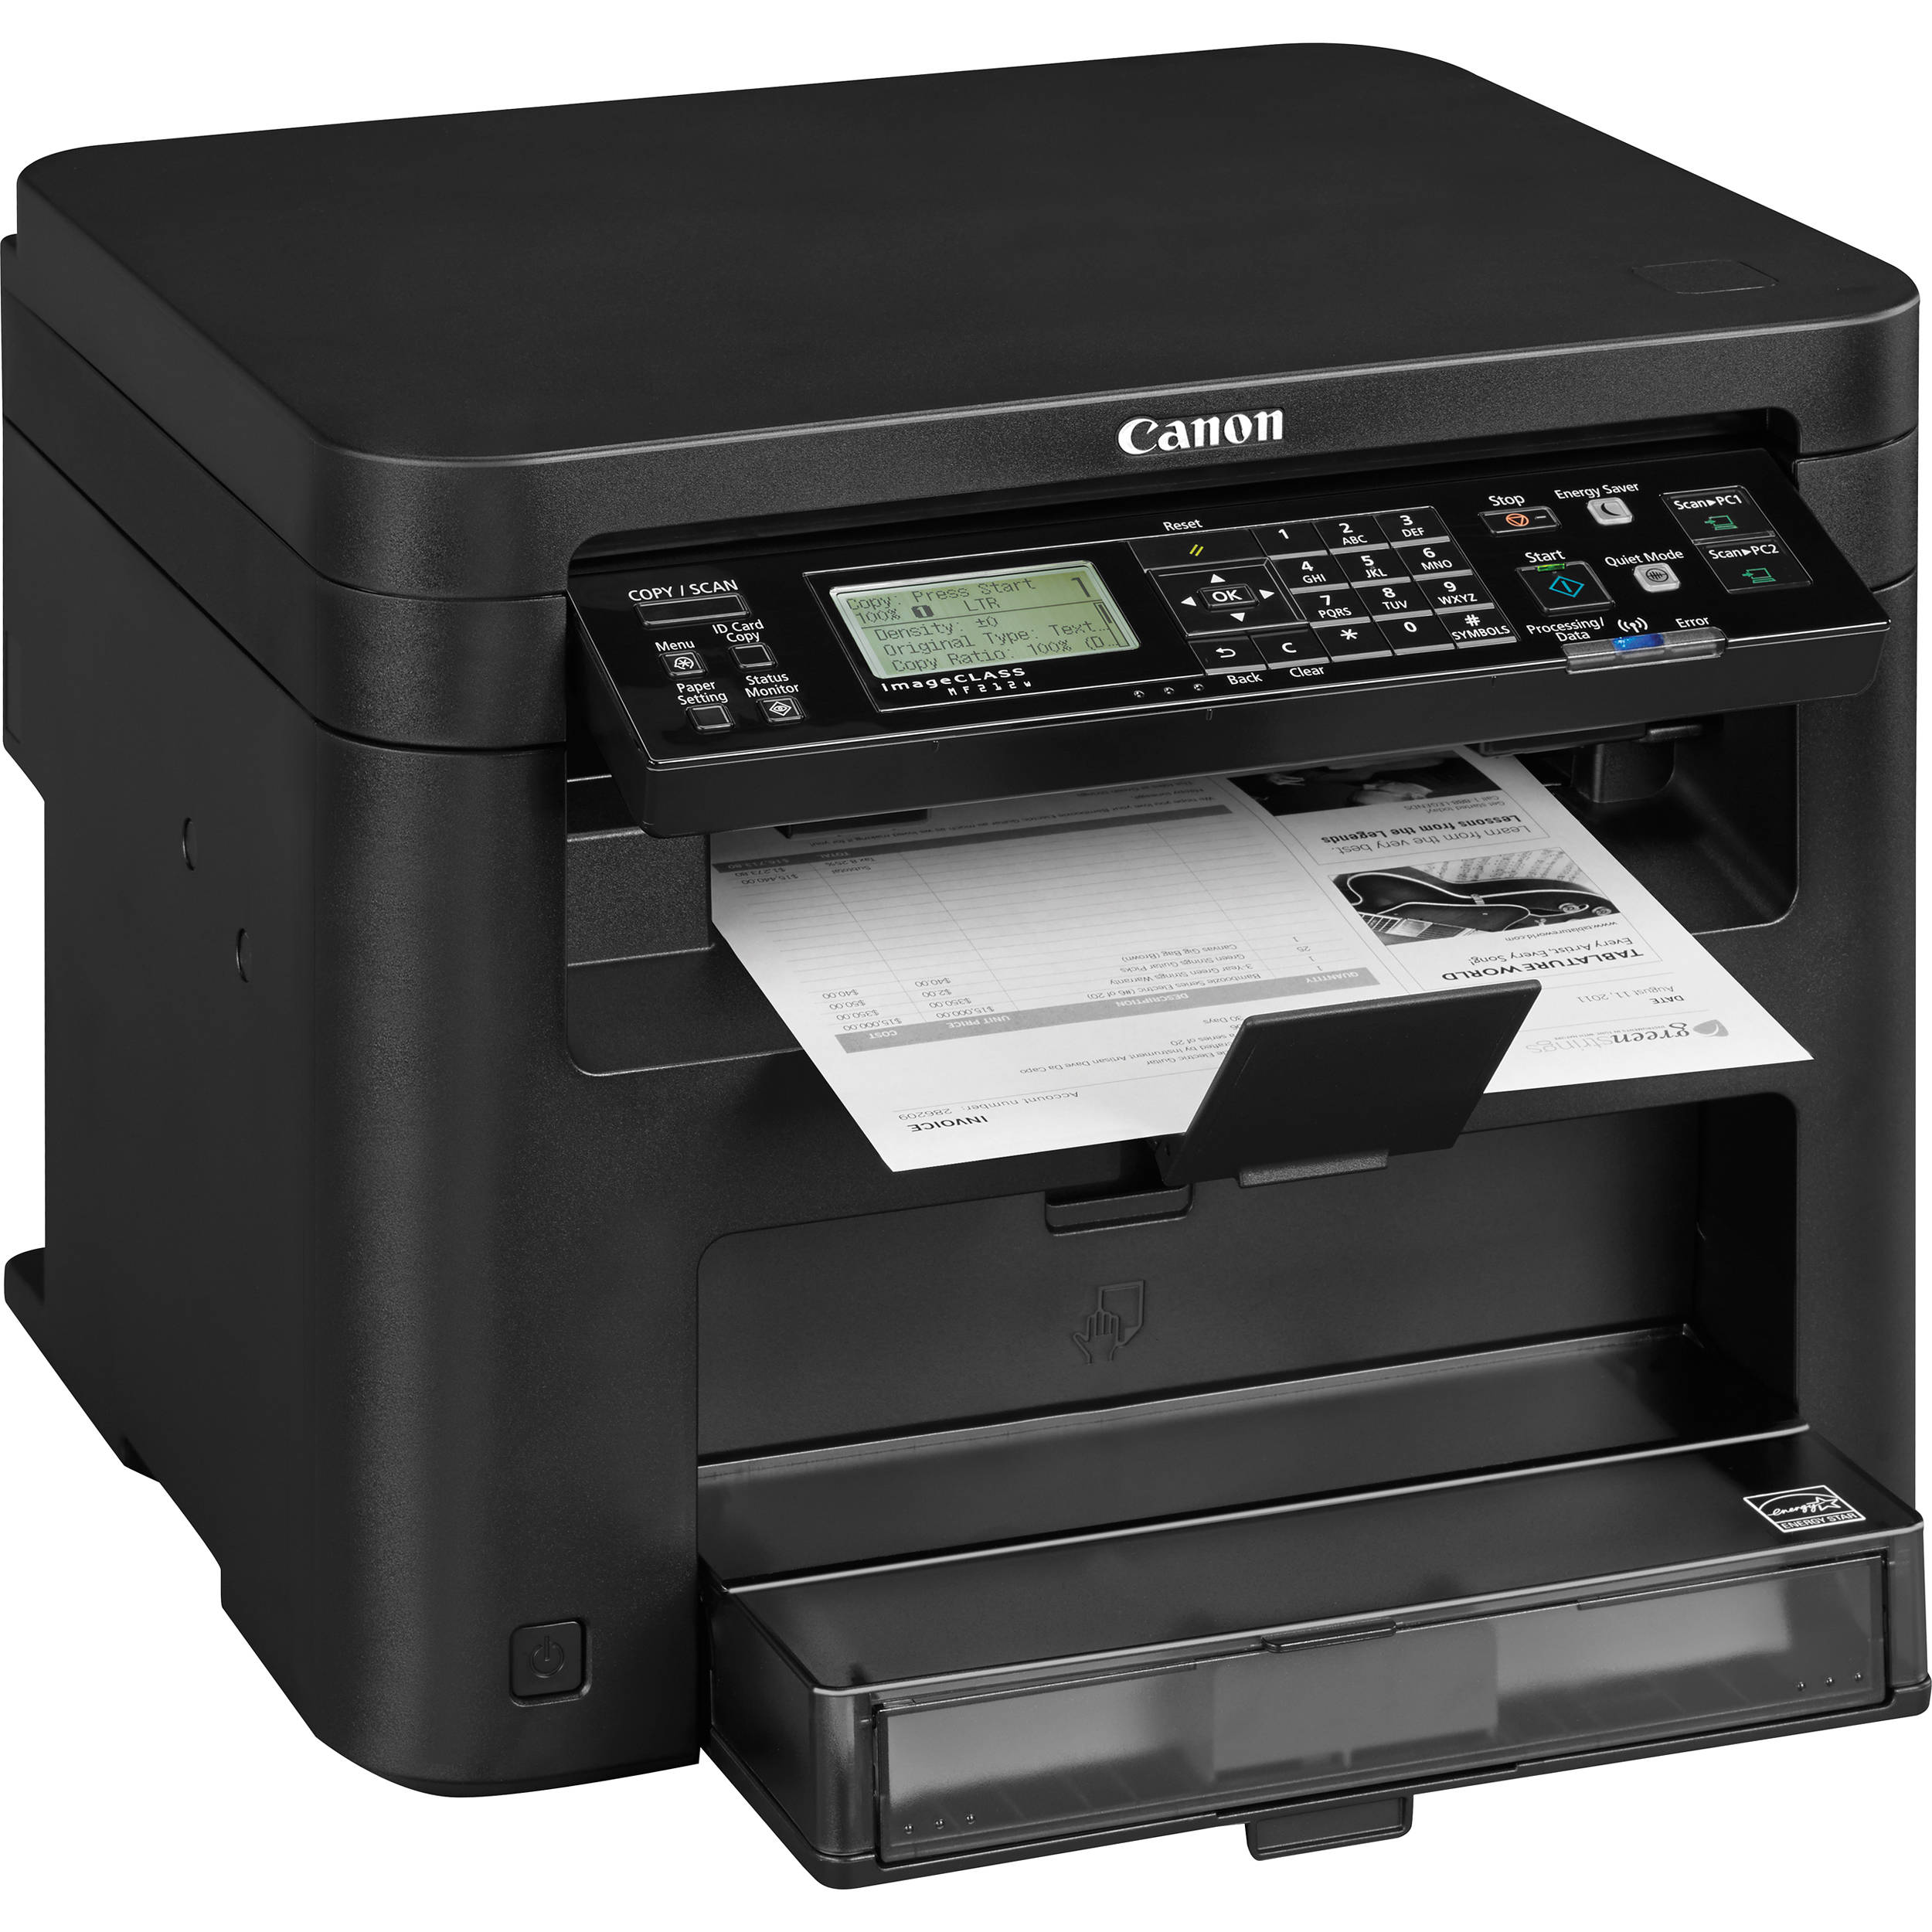 CANON MF210 PRINTER WINDOWS 8.1 DRIVERS DOWNLOAD